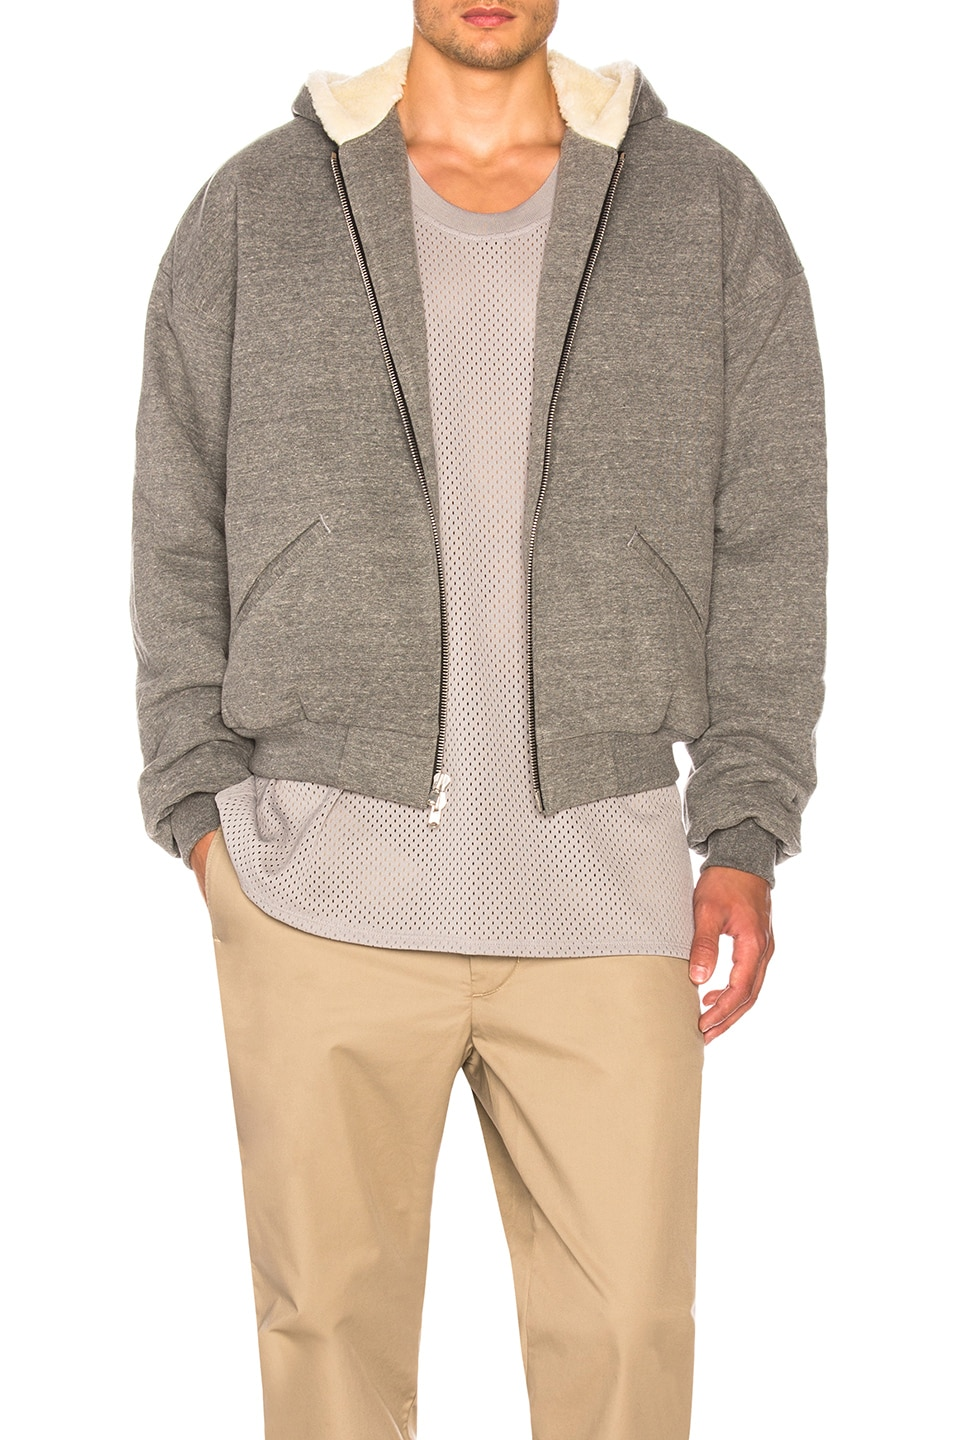 FEAR OF GOD Faux Shearling-Lined Cotton-Blend Jersey Zip-Up Hoodie,